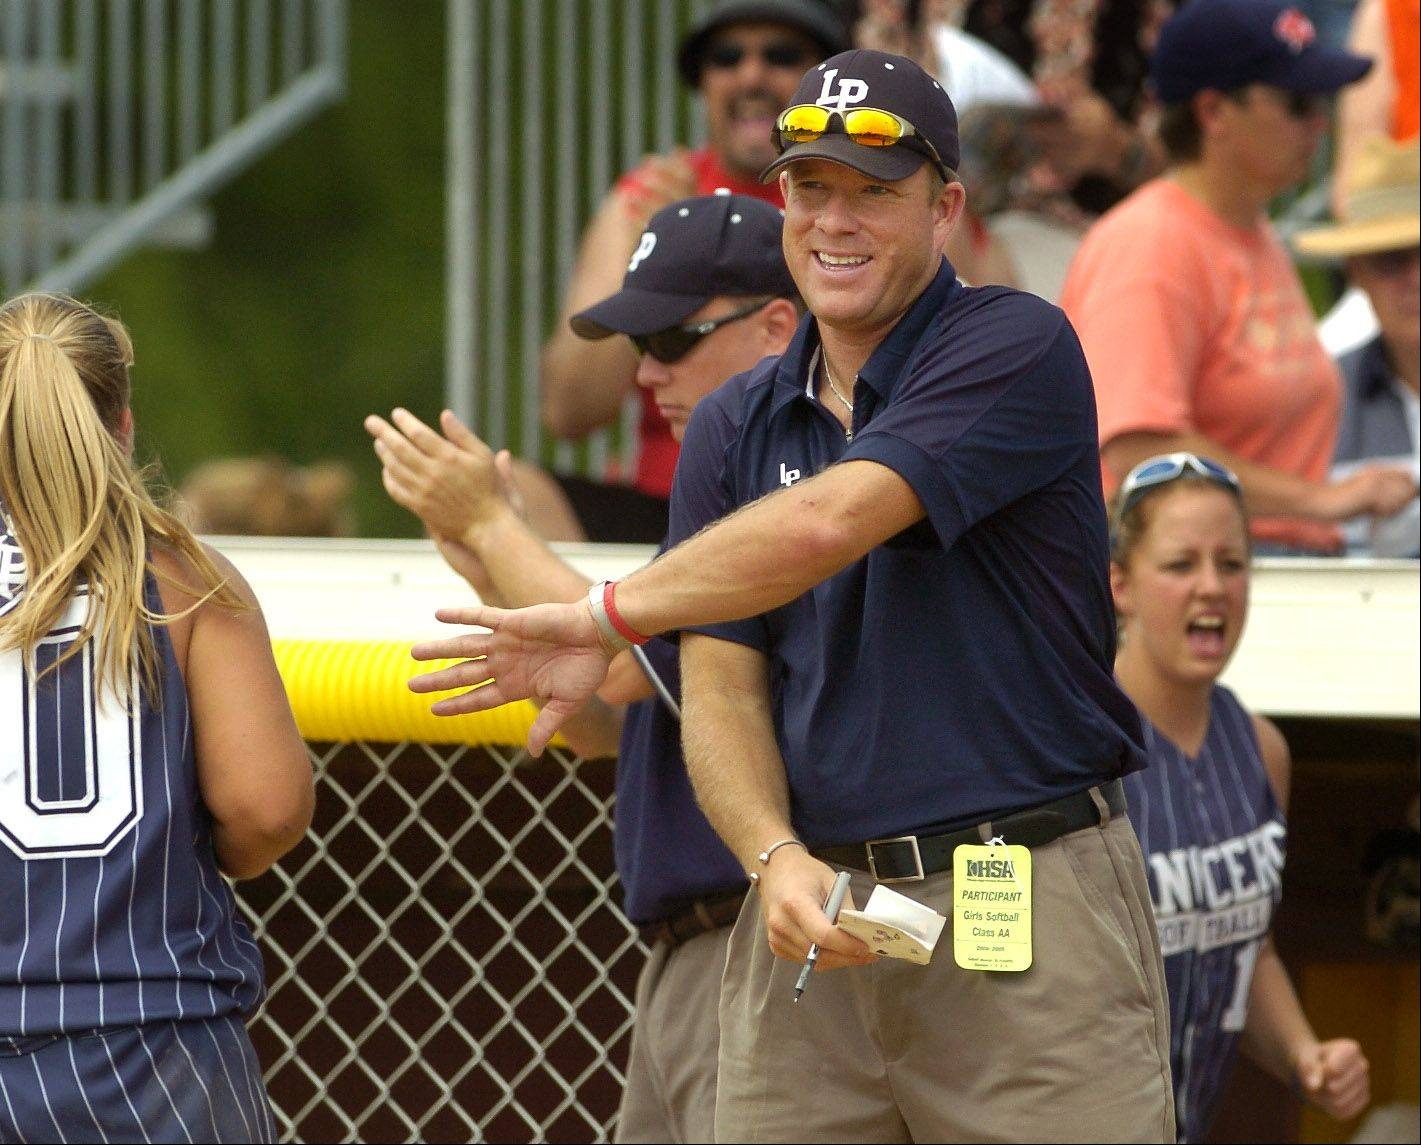 Cray Allen, here coaching Lake Park in the 2005 high school softball state quarterfinals, is Harper College's new coach.